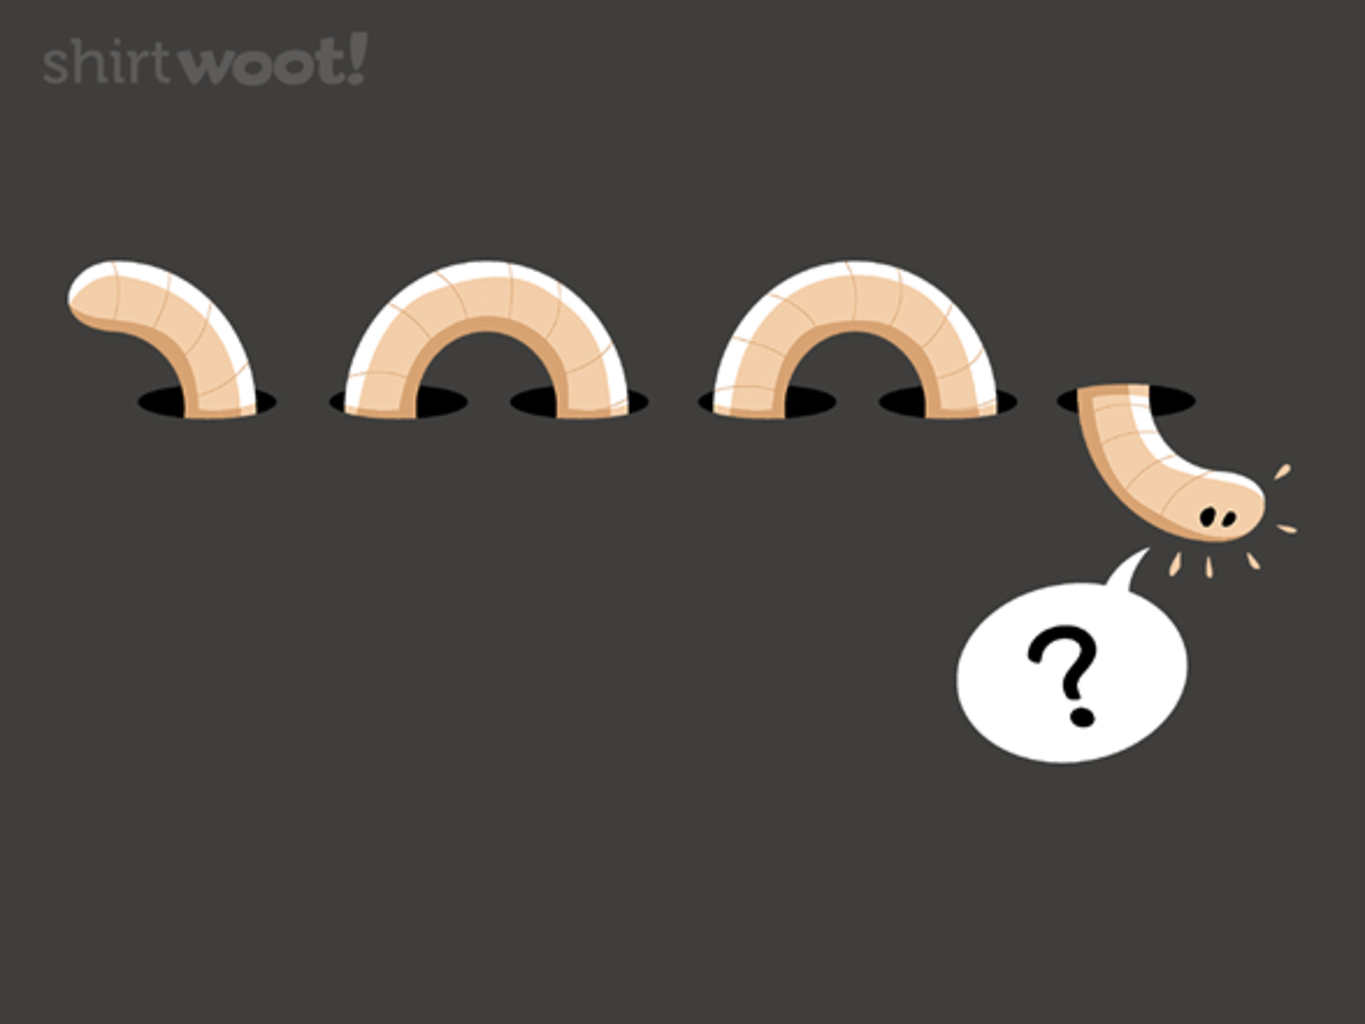 Woot!: Wormhole